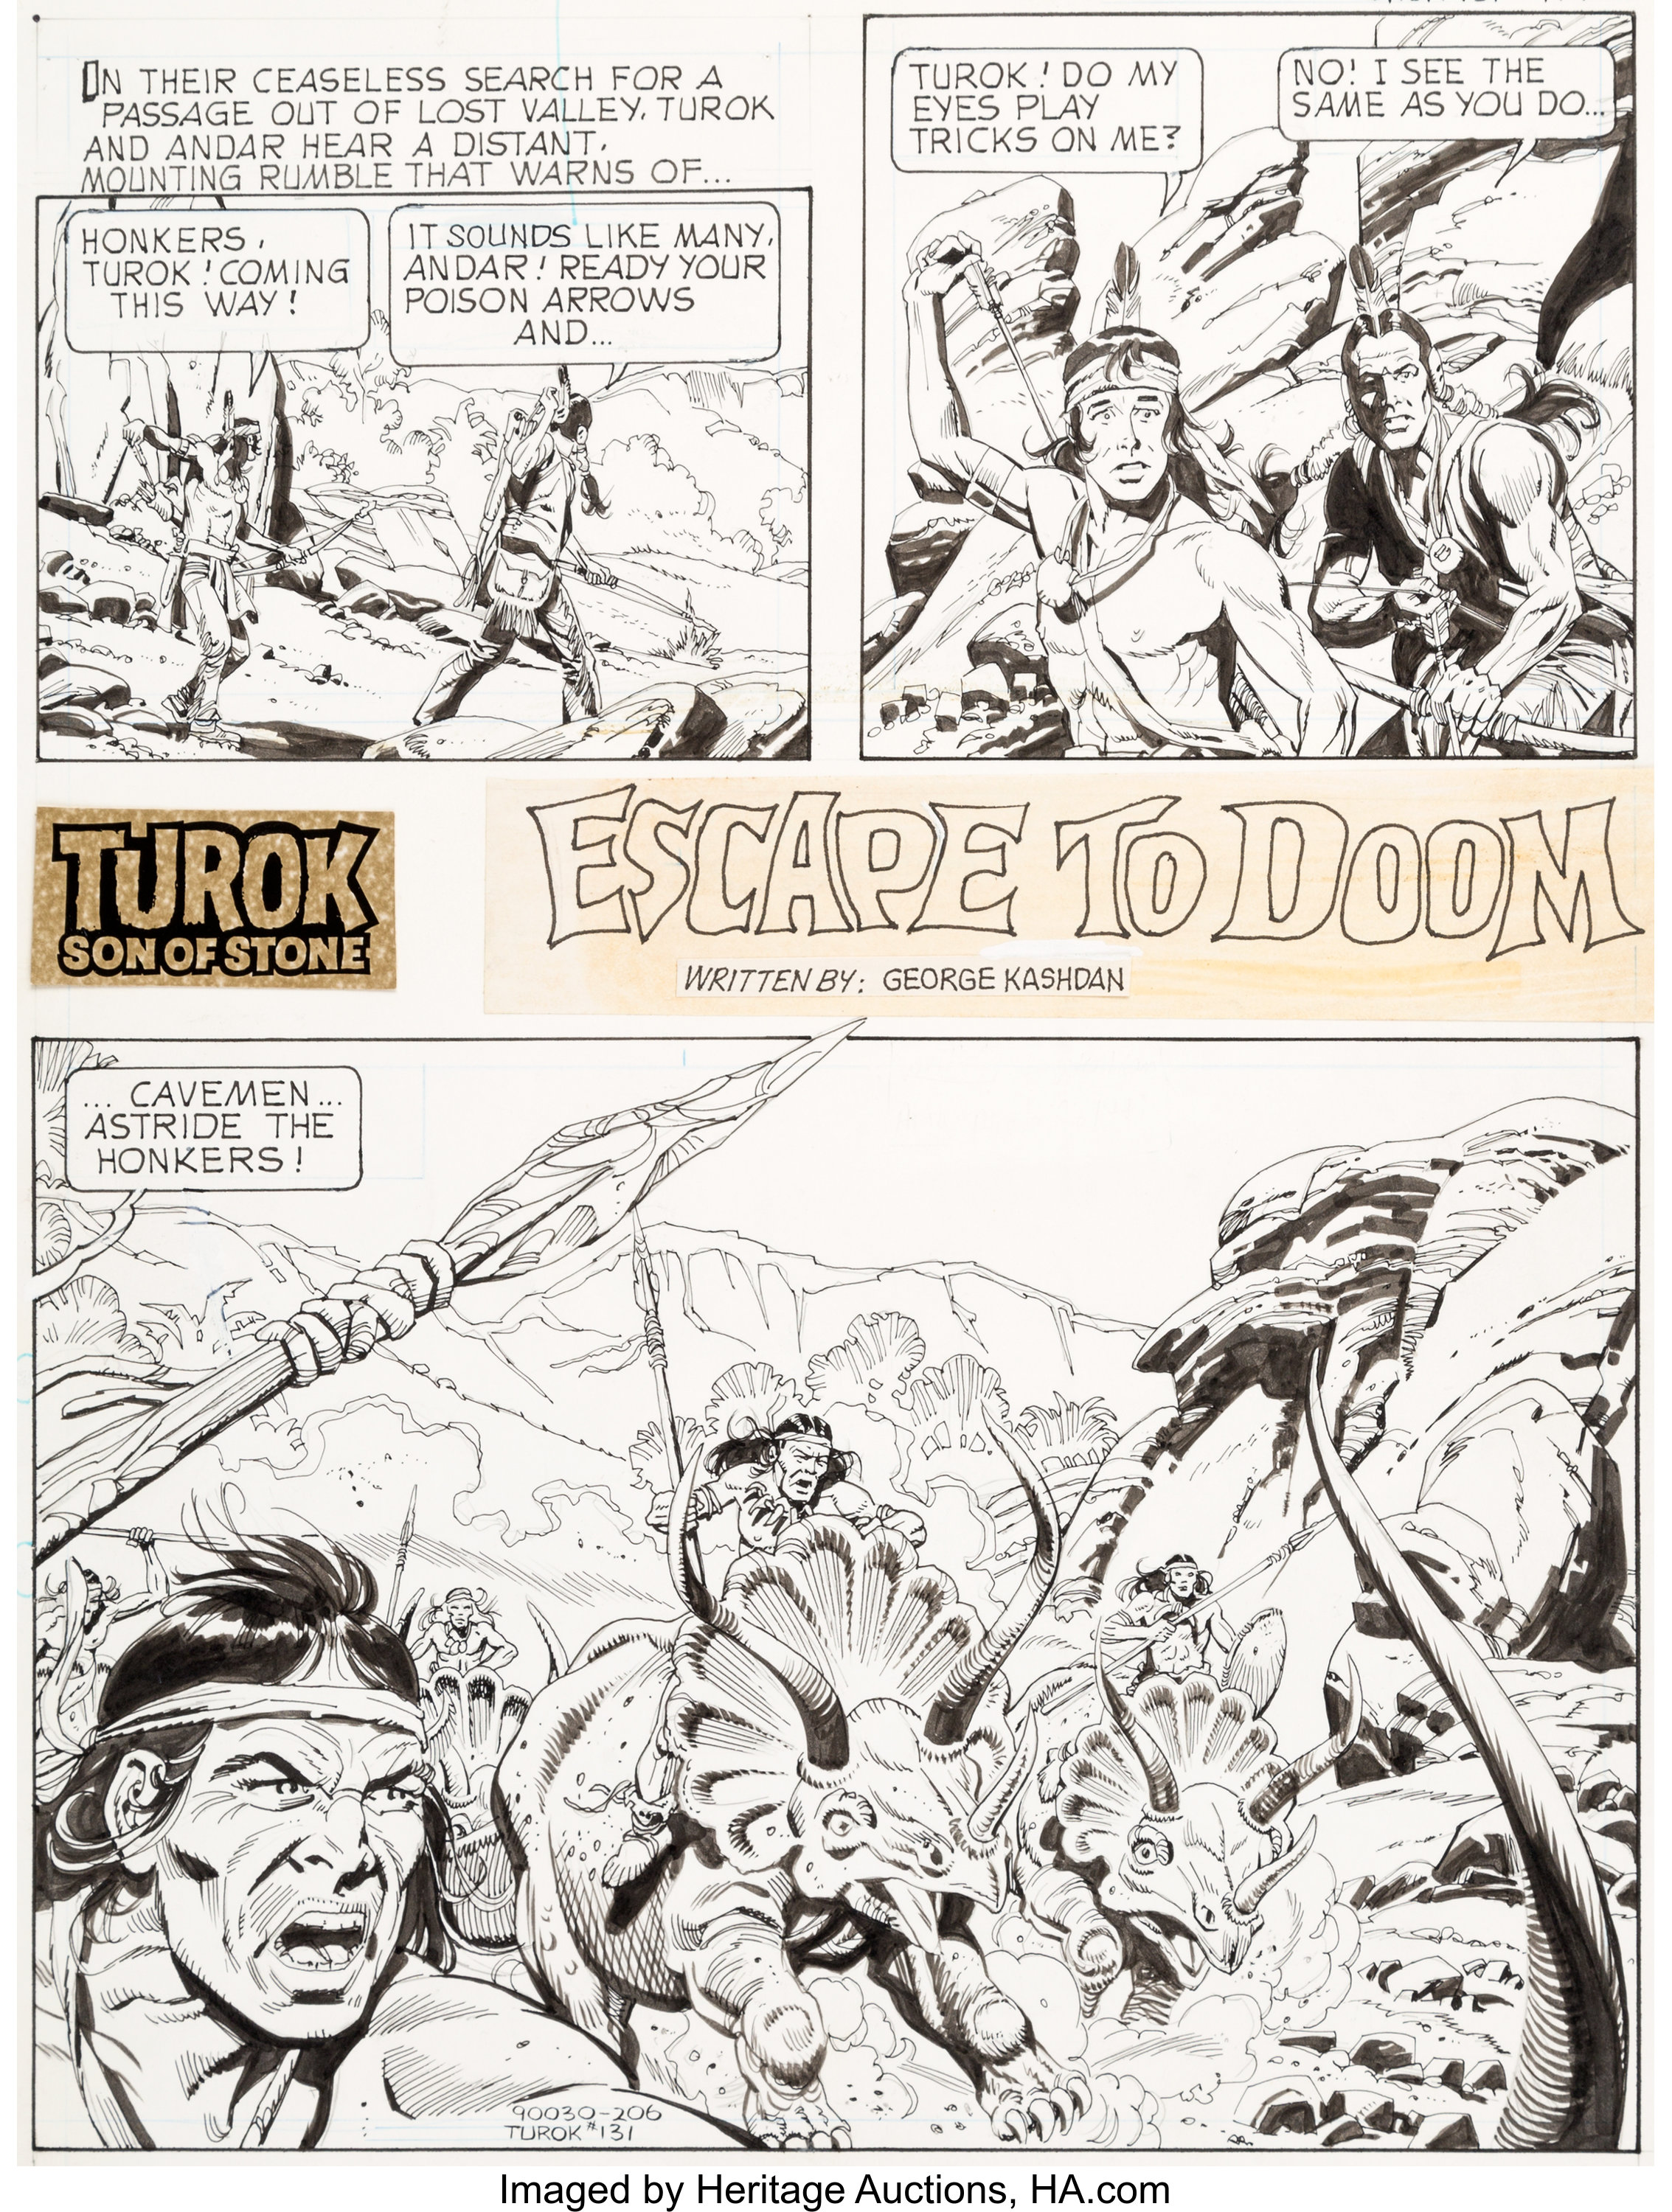 Alberto Giolitti Turok Son Of Stone 131 Unpublished Complete Lot 94133 Heritage Auctions